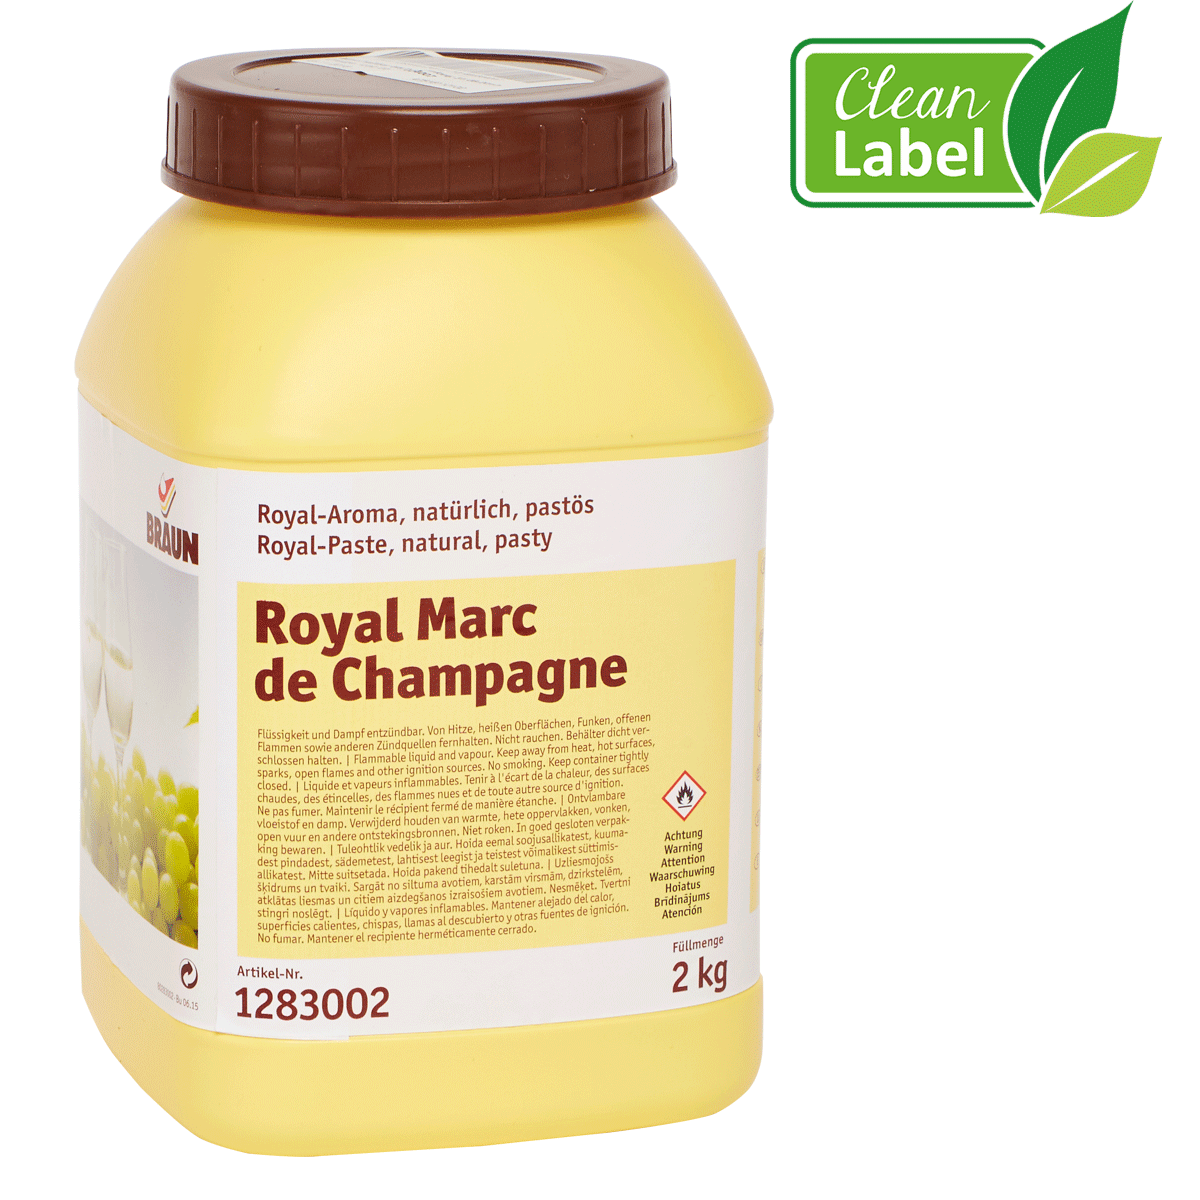 Royal Marc de Champagne